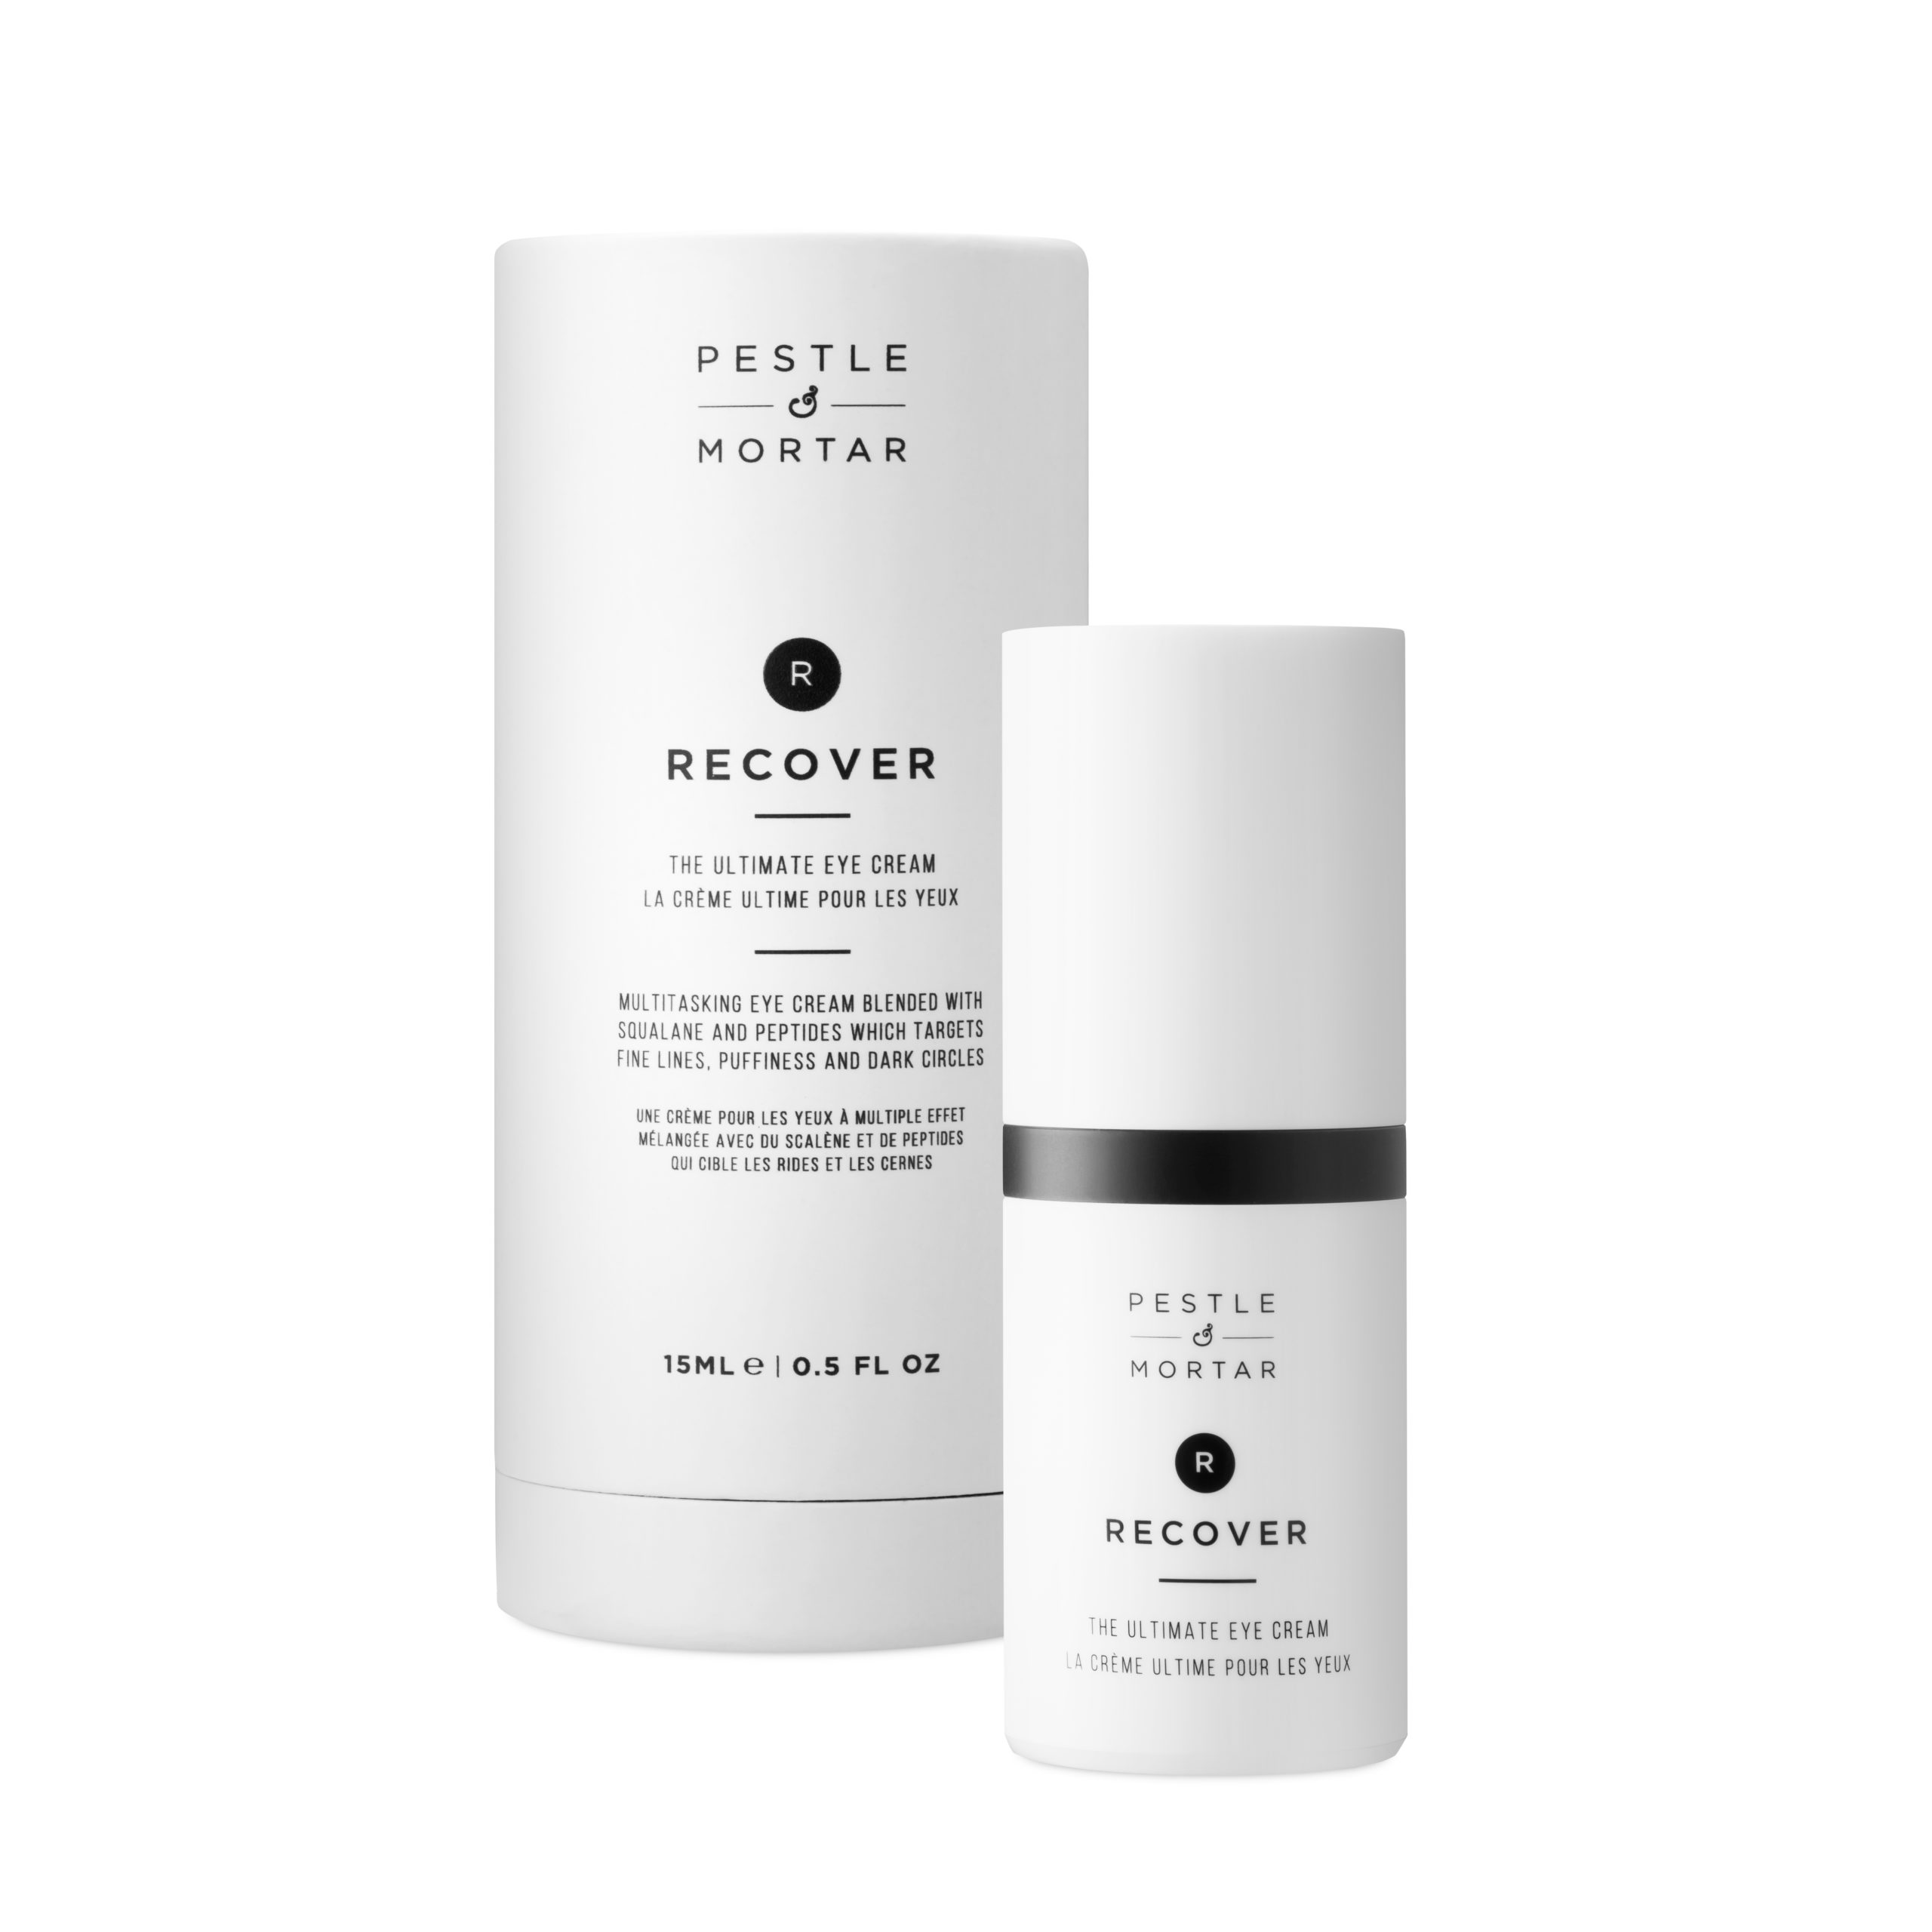 Pestle and Mortar Recover Eye Cream 15ml